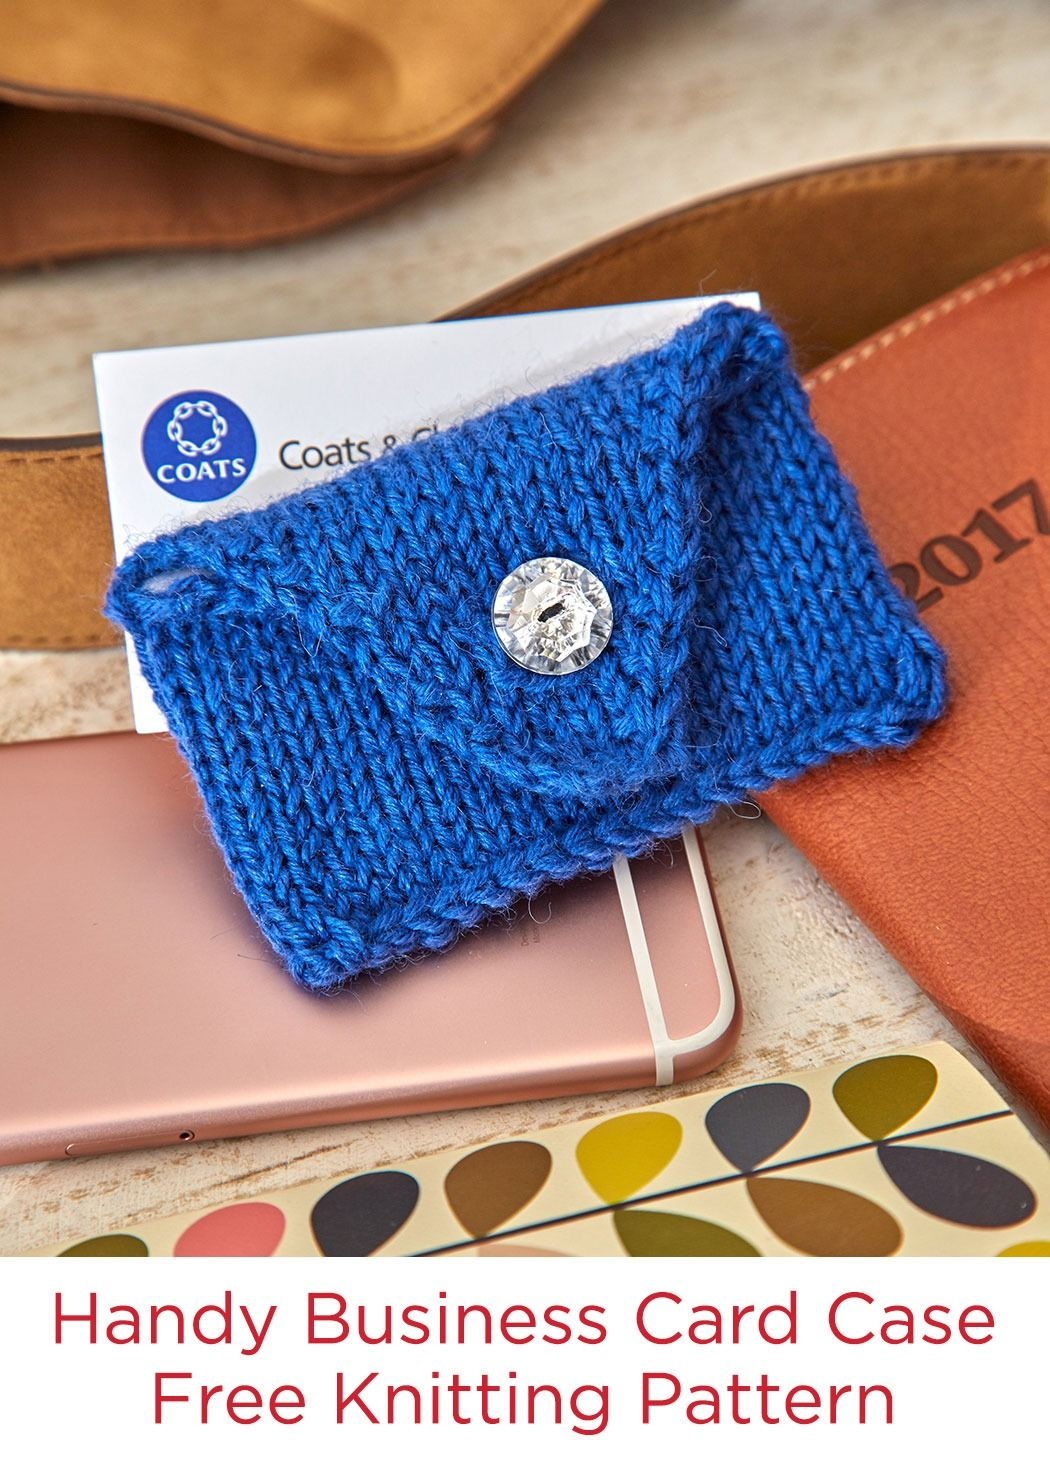 Handy business card case free knitting pattern in red heart heart pull out your knitted business card case and youll quickly find out if your new acquaintance is also a knitter its perfect for giving to congratulate magicingreecefo Image collections